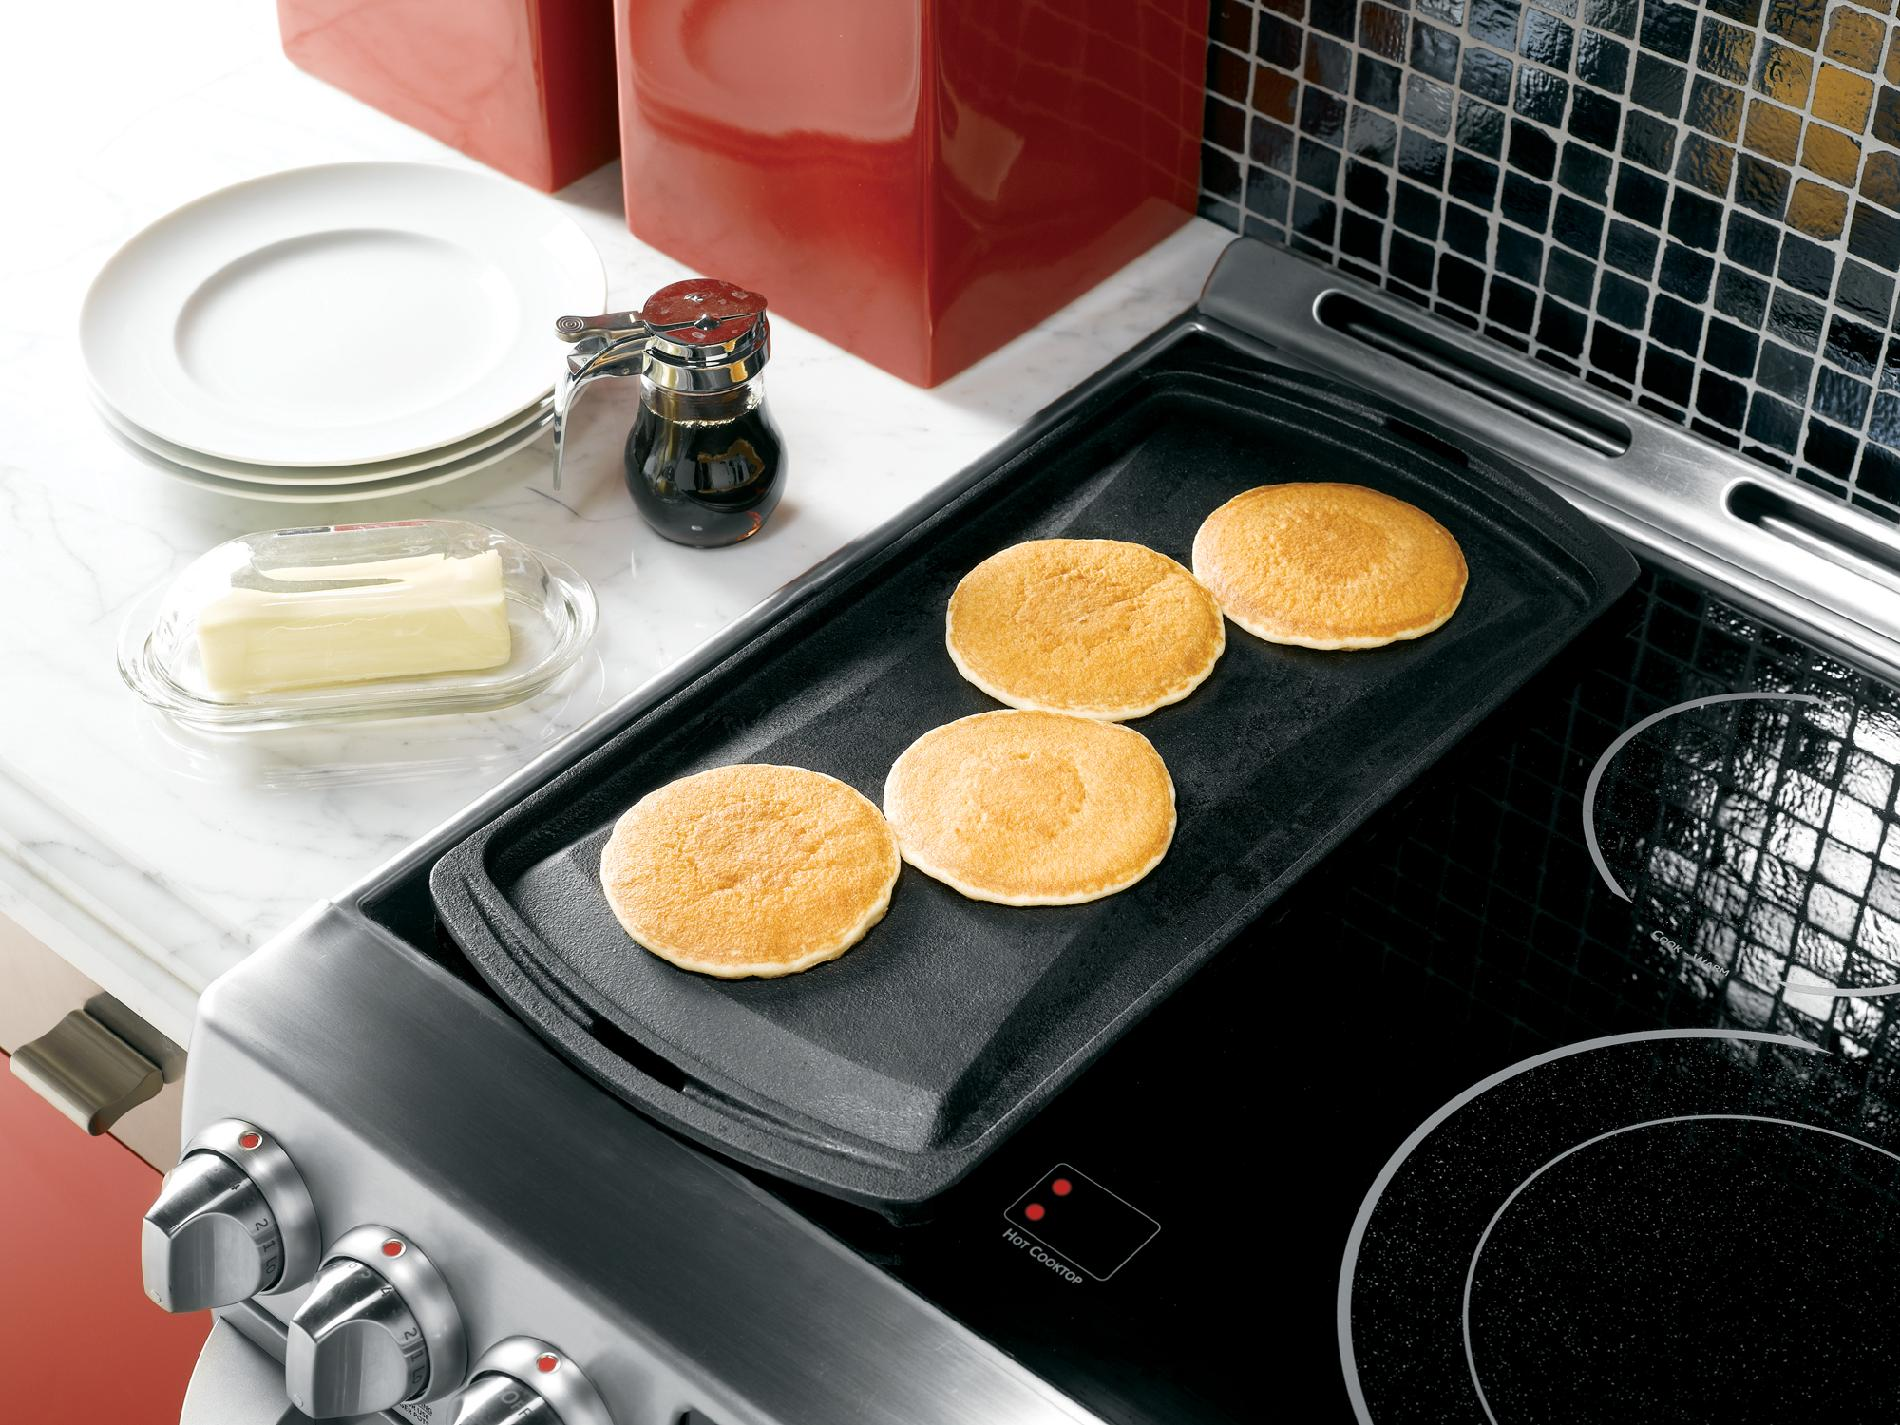 GE Cafe™ Series CS980STSS 5.4 cu. ft. Convection Range w/ Baking Drawer - Stainless